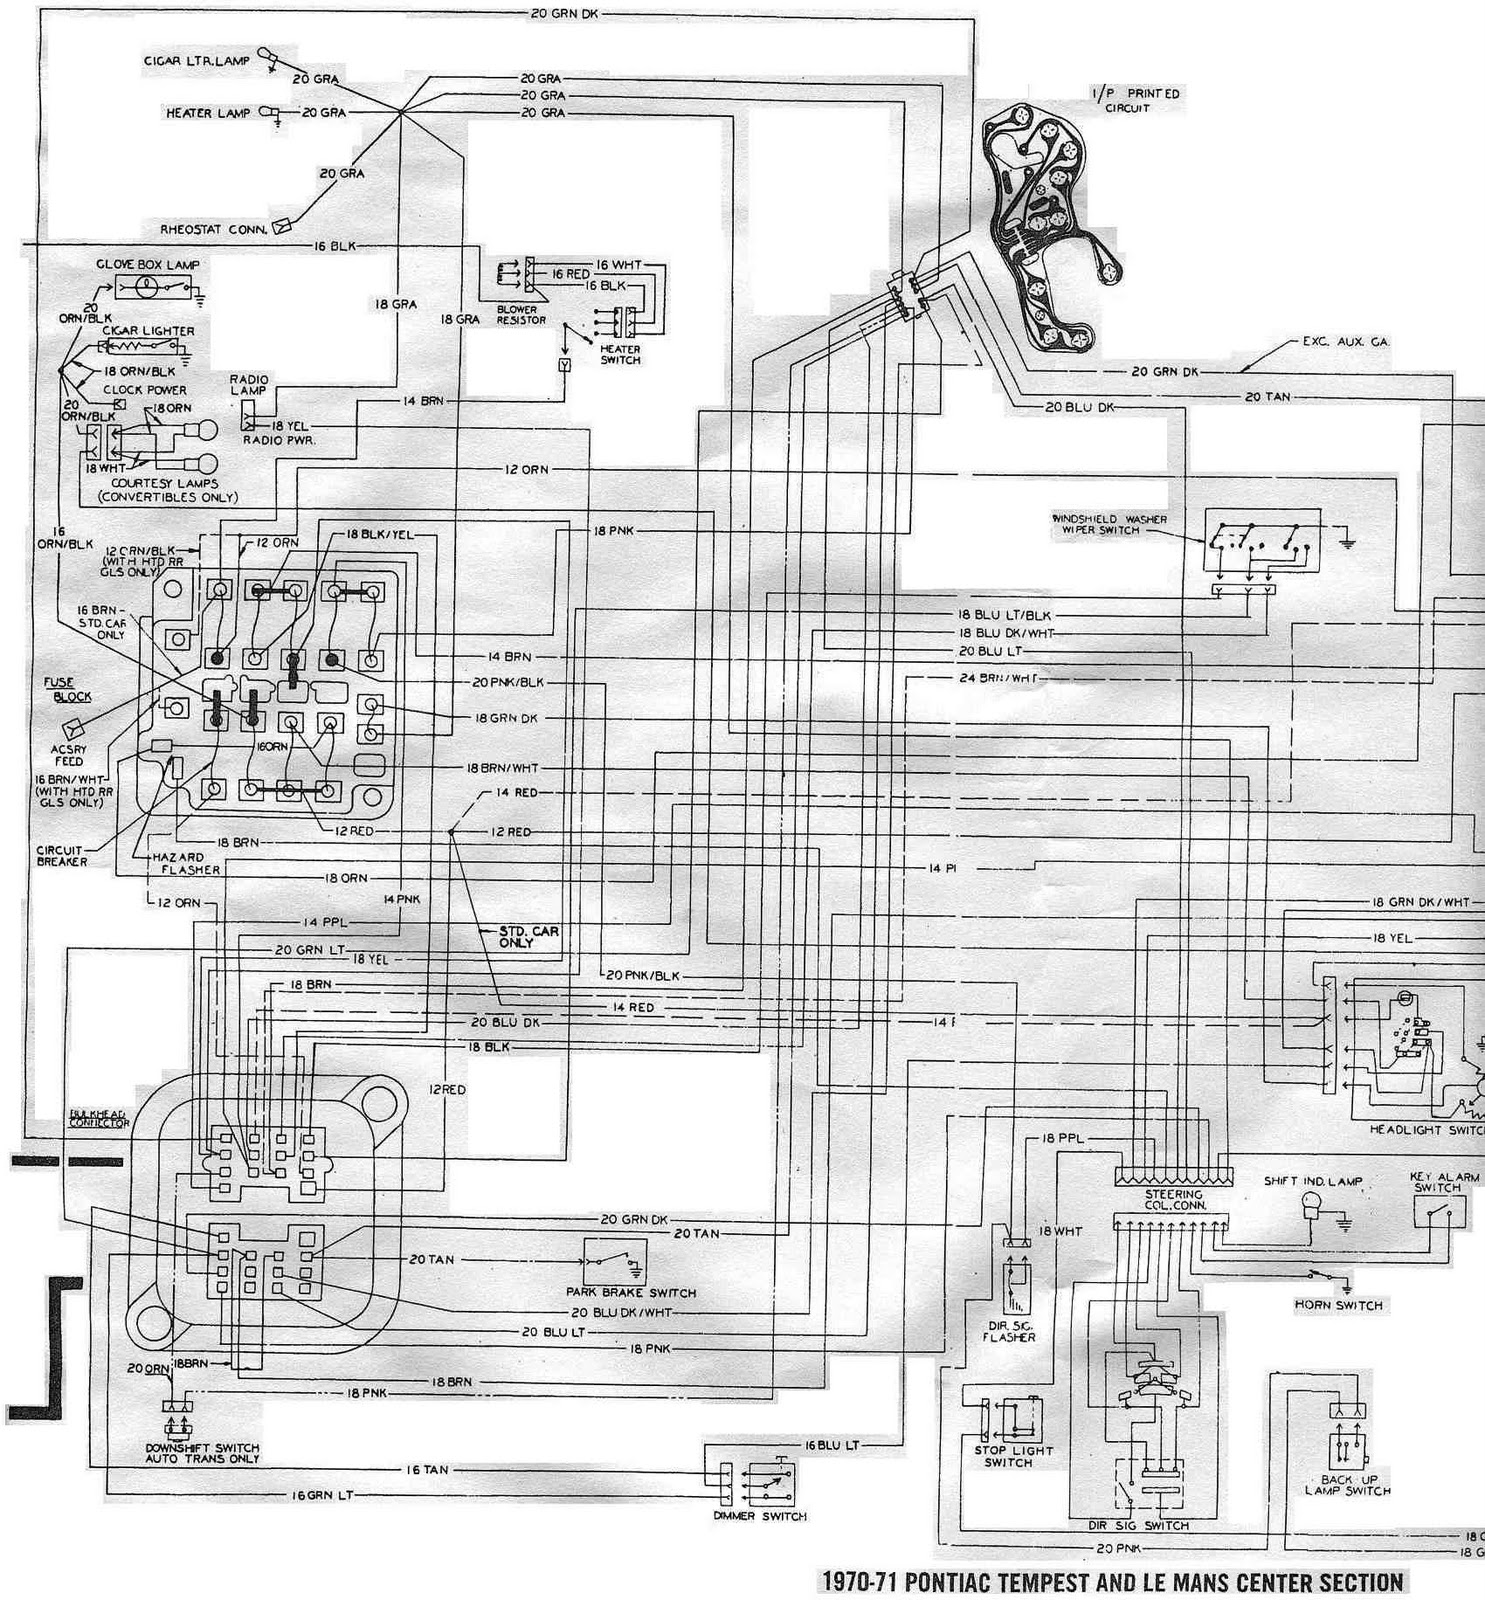 66 gto ignition switch wiring diagram great design of wiring diagram u2022 rh homewerk co 66 GTO Wiring Schematic 65 GTO Wiring Diagram Schematic